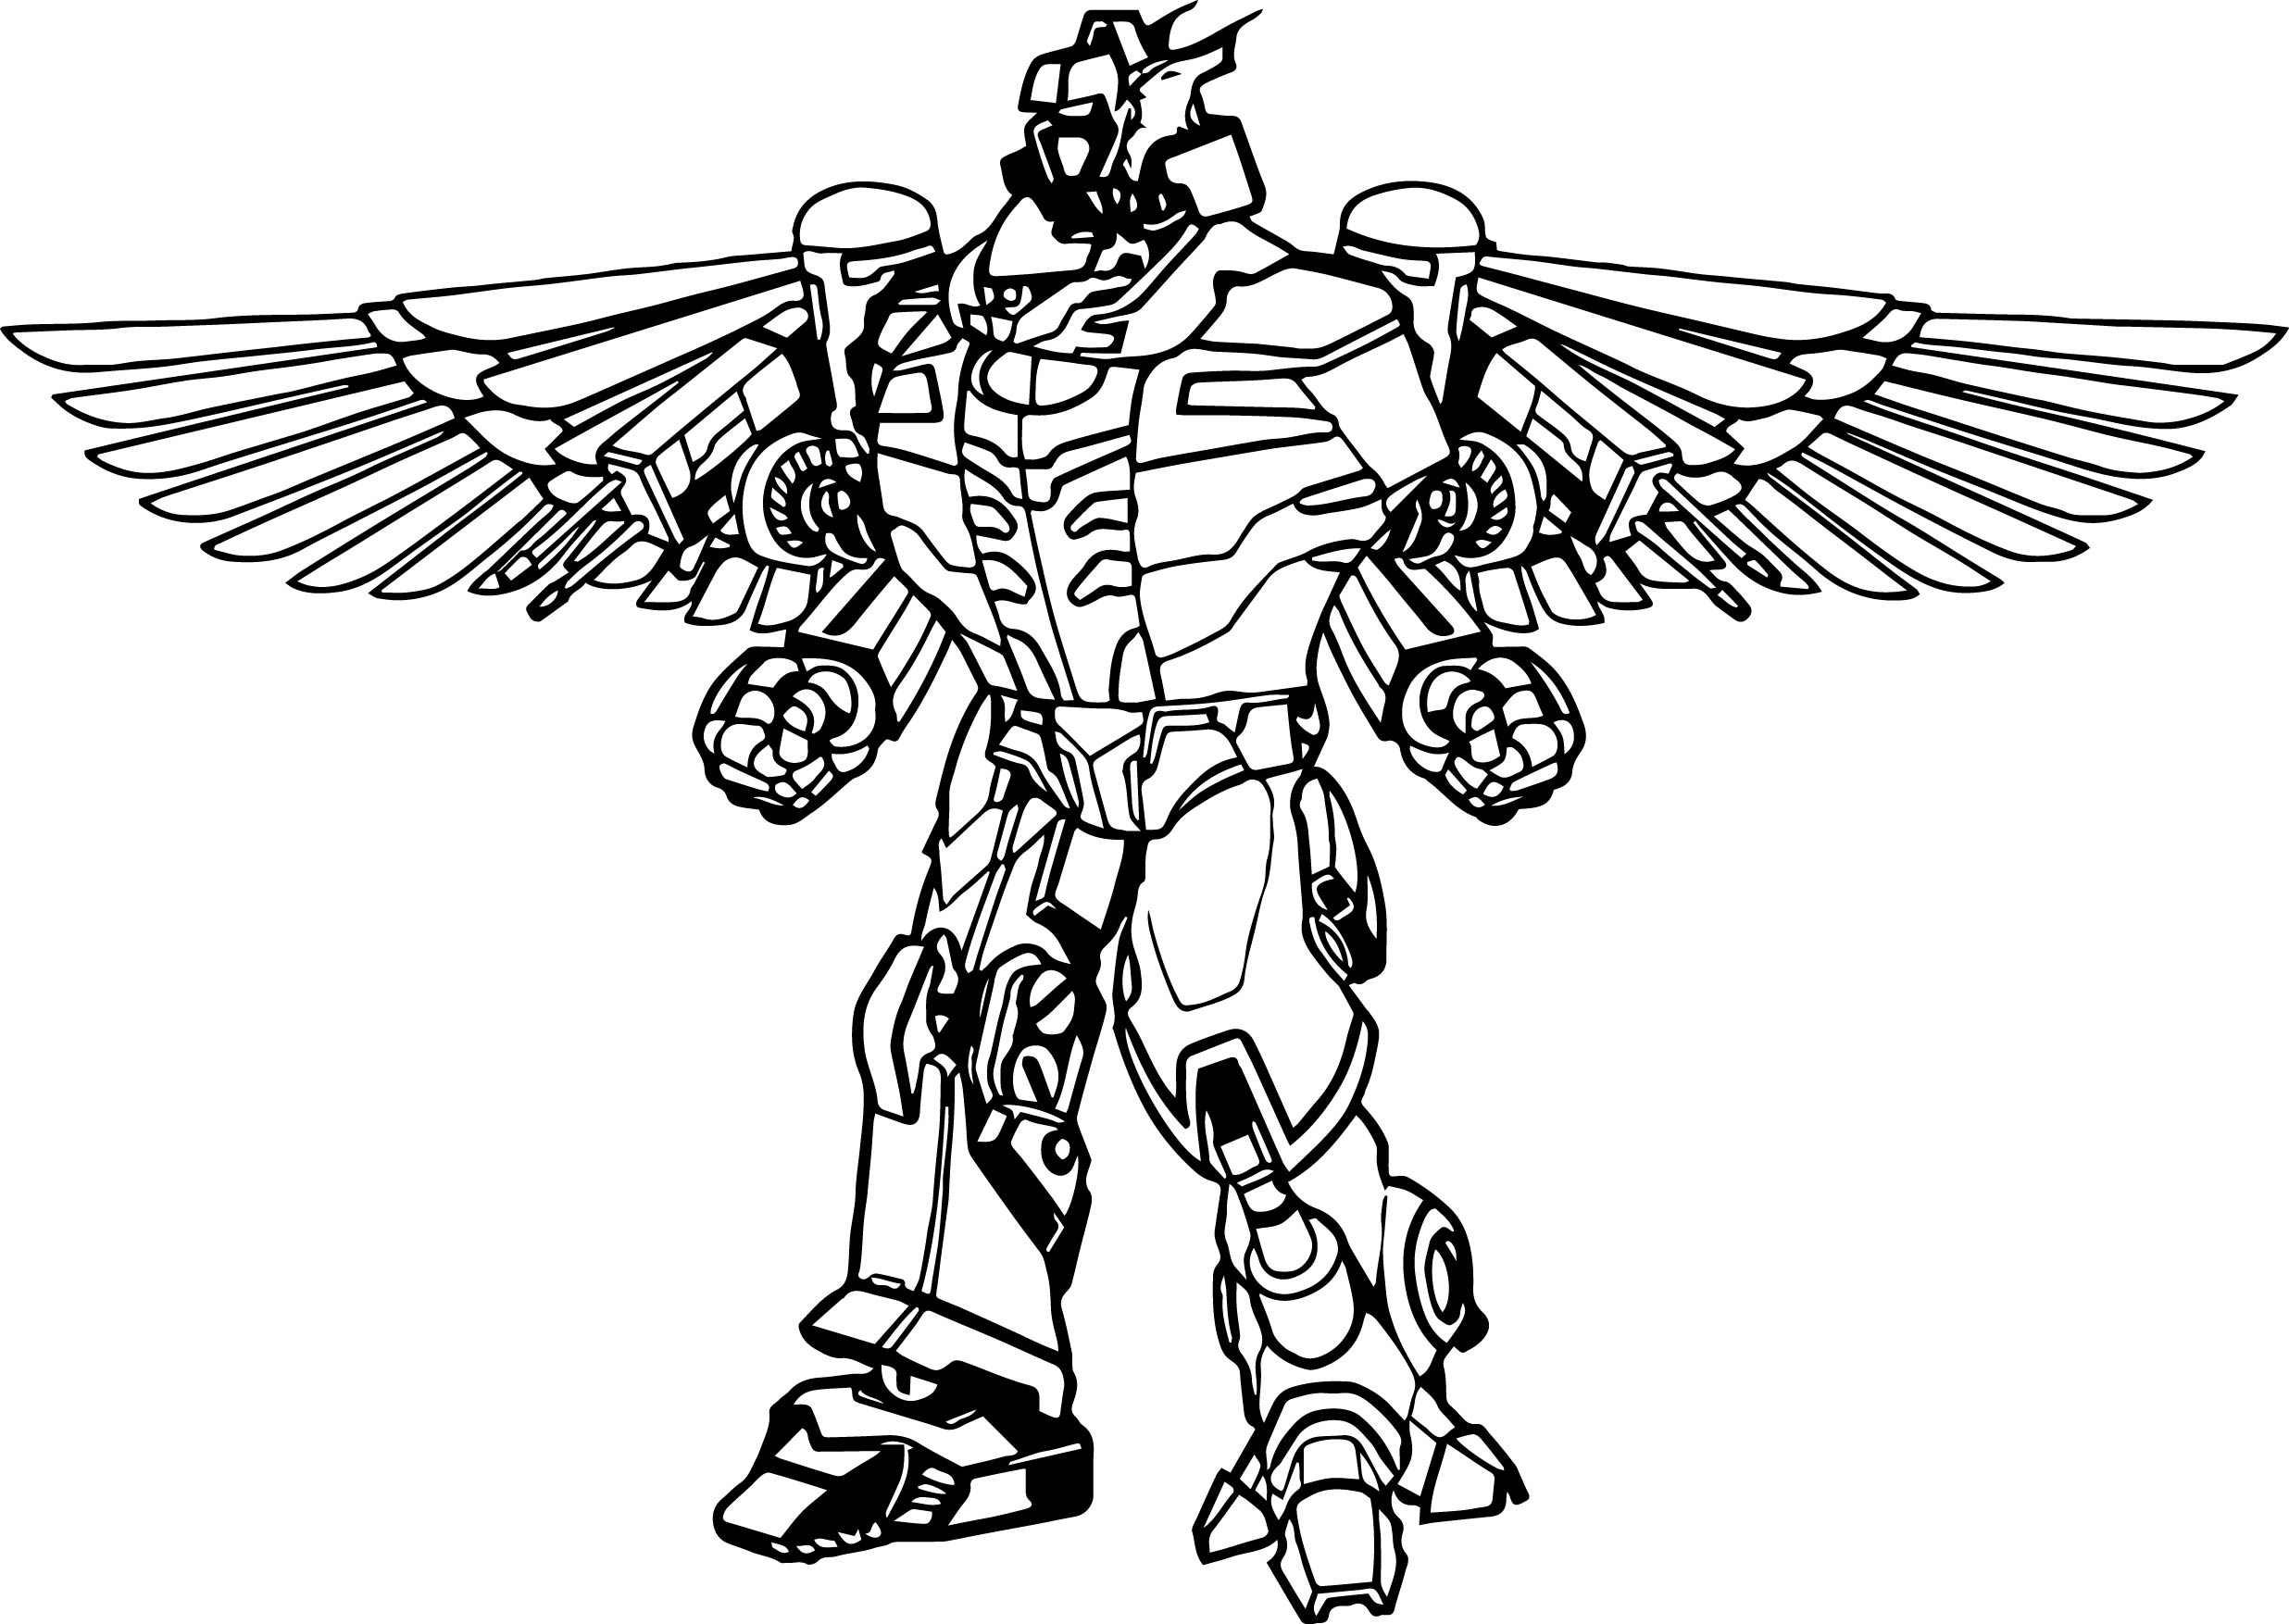 Power Rangers Dino Charge Coloring Pages - Power Rangers Robot Coloring Page